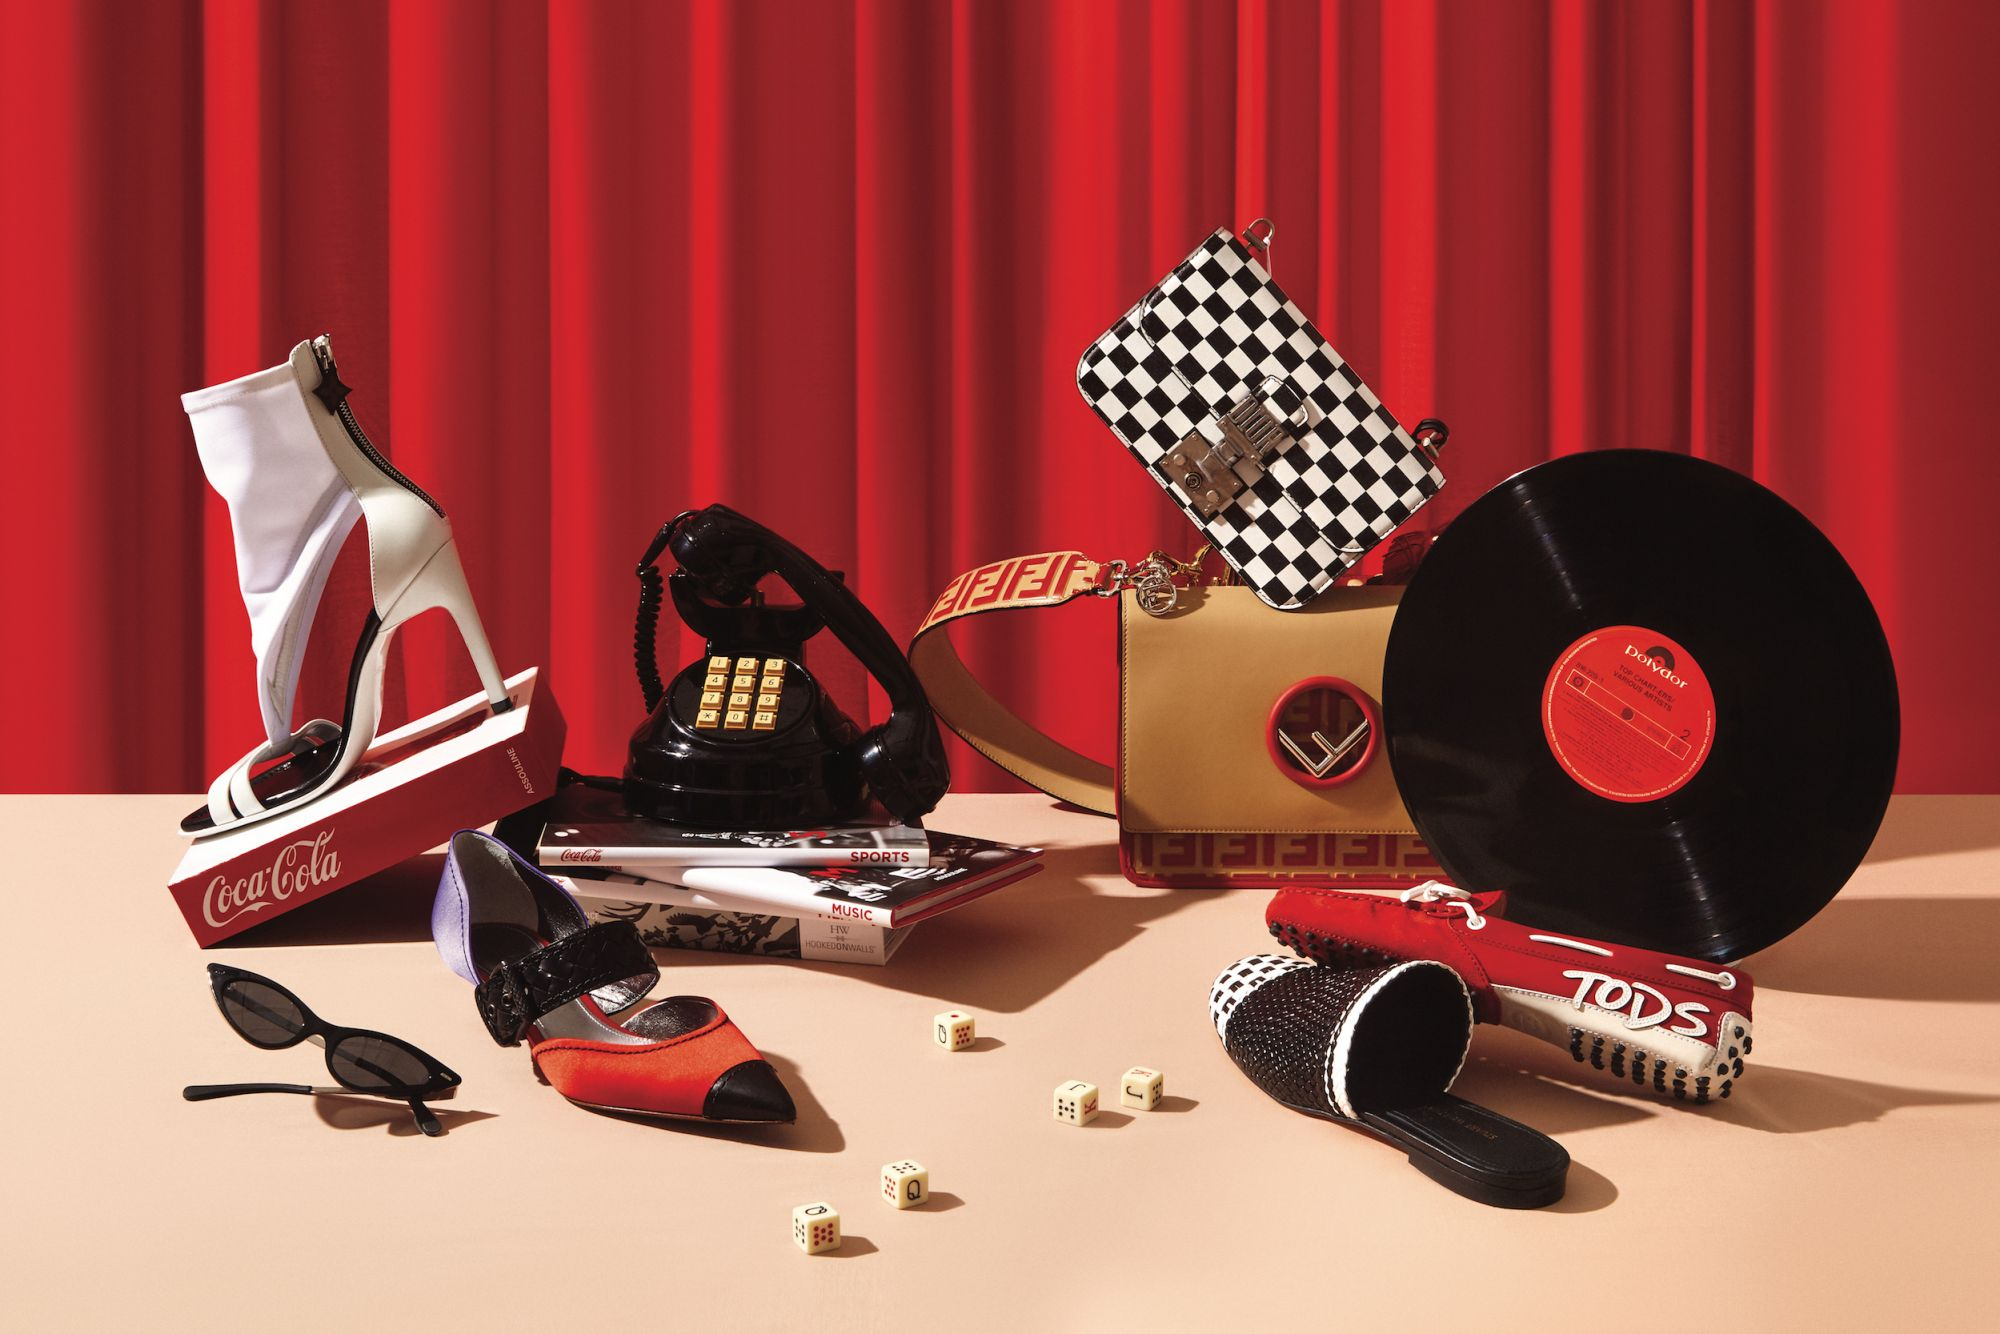 Shop The Shoot: Flashback To The '60s